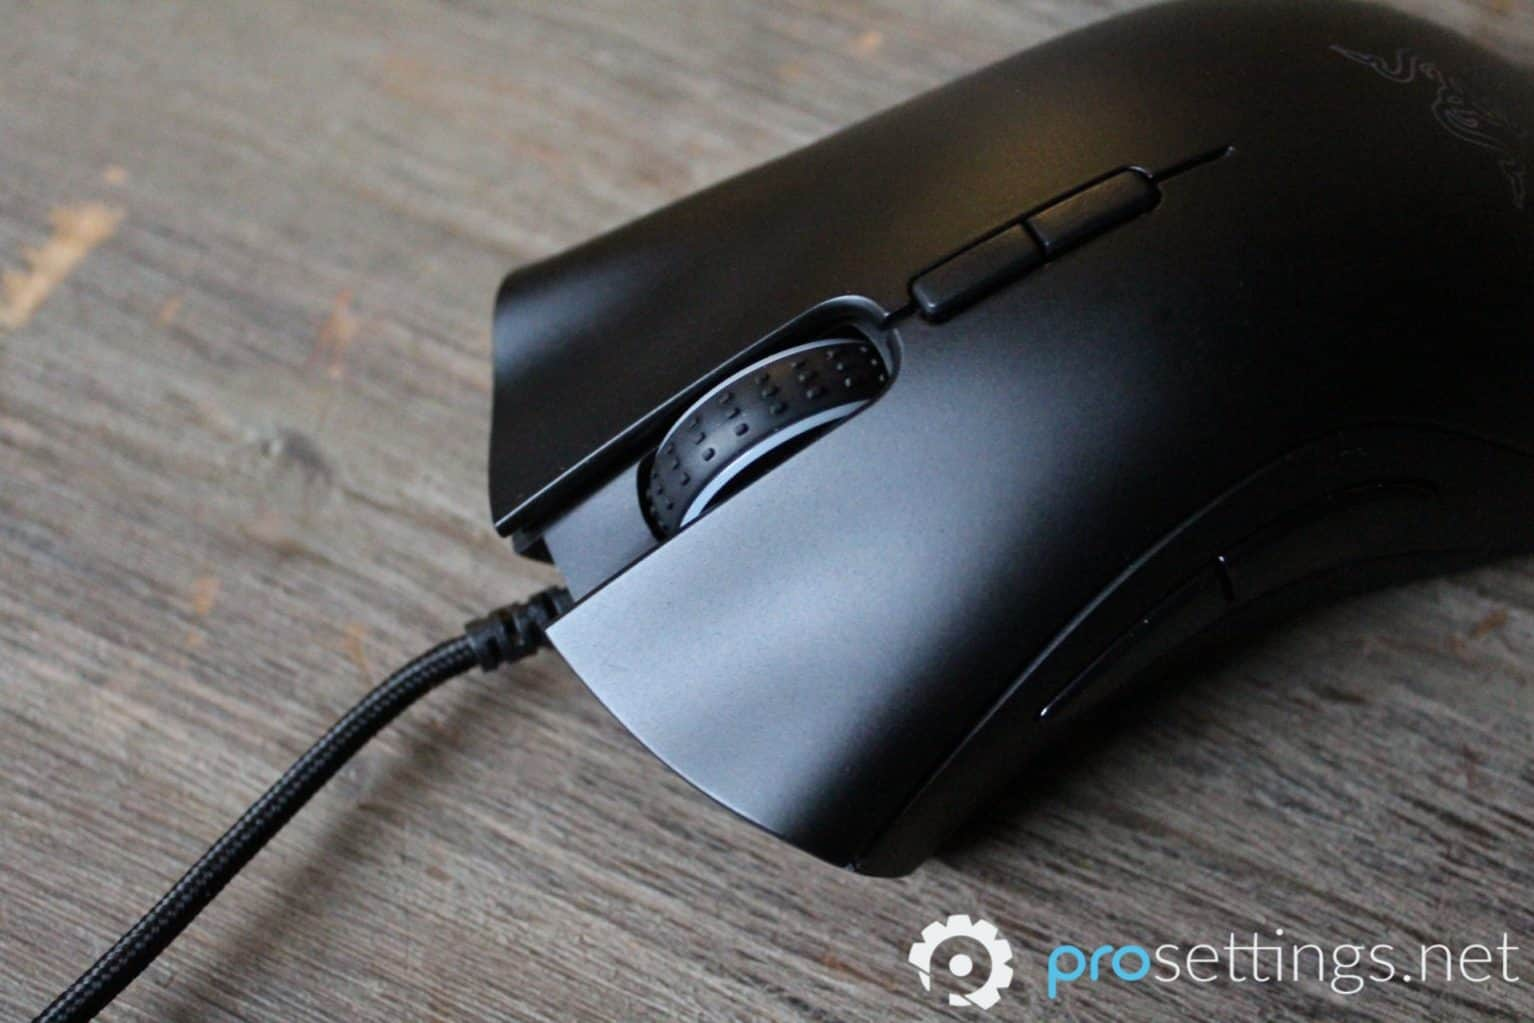 Razer Deathadder Elite Review | ProSettings net